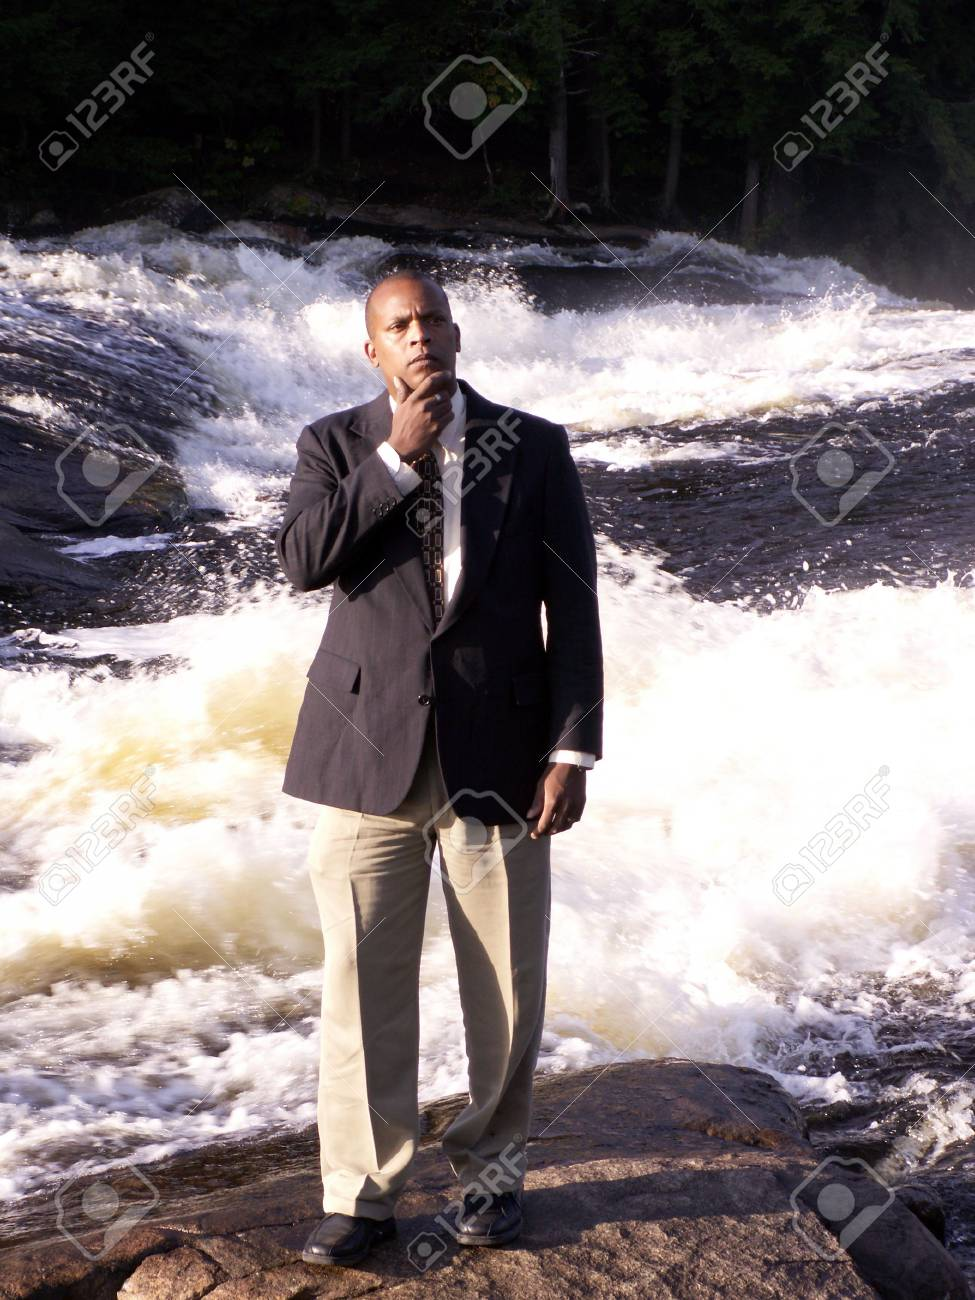 business man in a suit standing and thinking in front of a rushing river Stock Photo - 270537